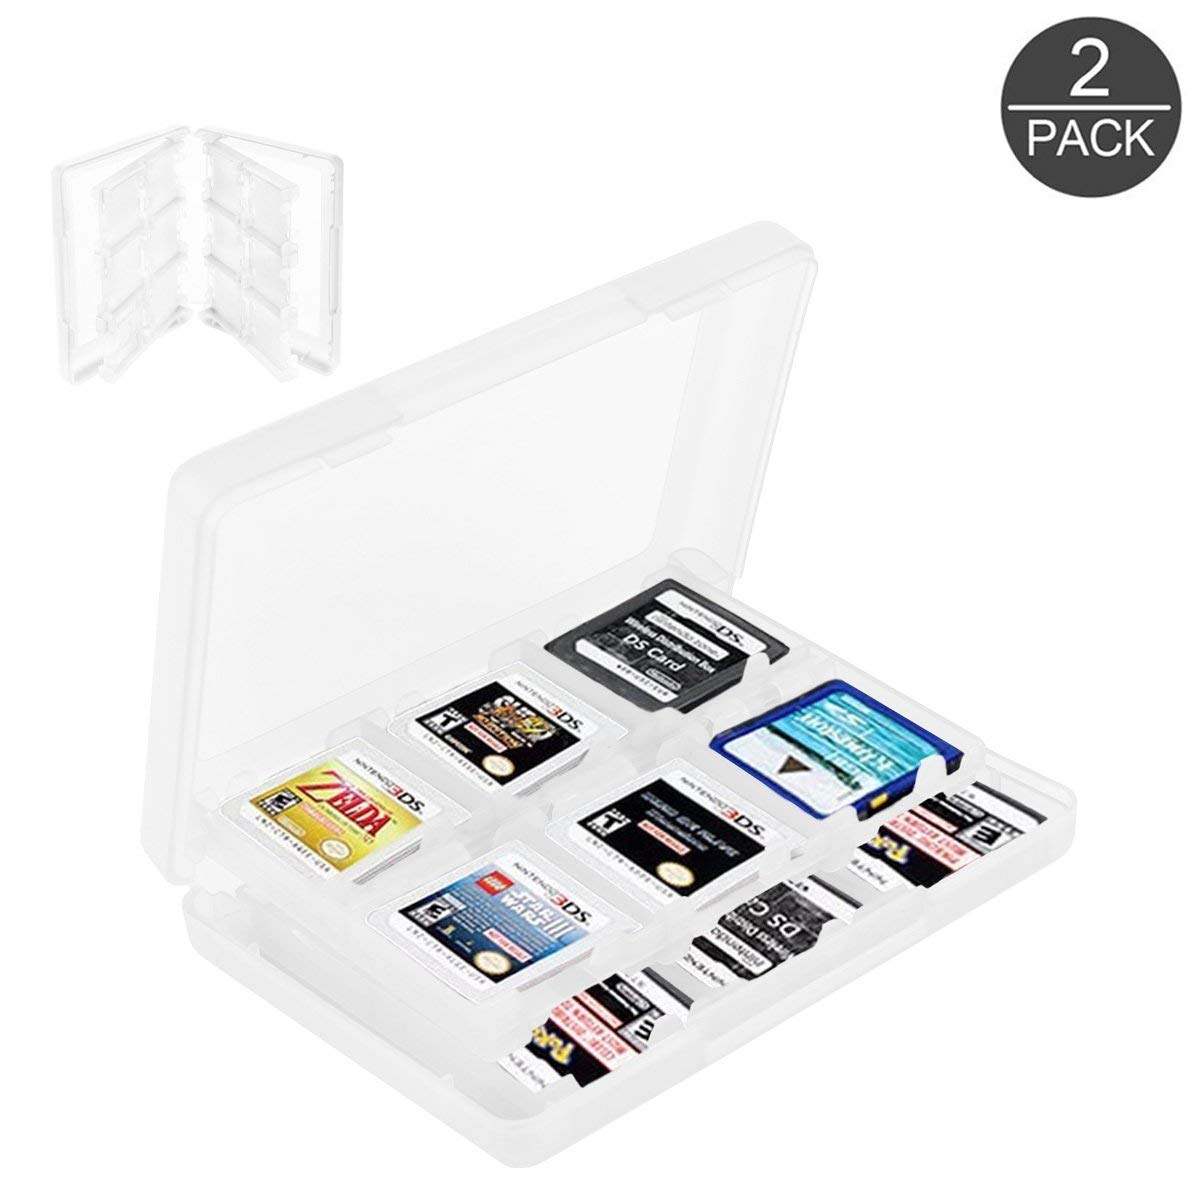 2 Pack 28 In 1 Game Card Case Holder For Nintendo 3ds Xl 3ds Ds